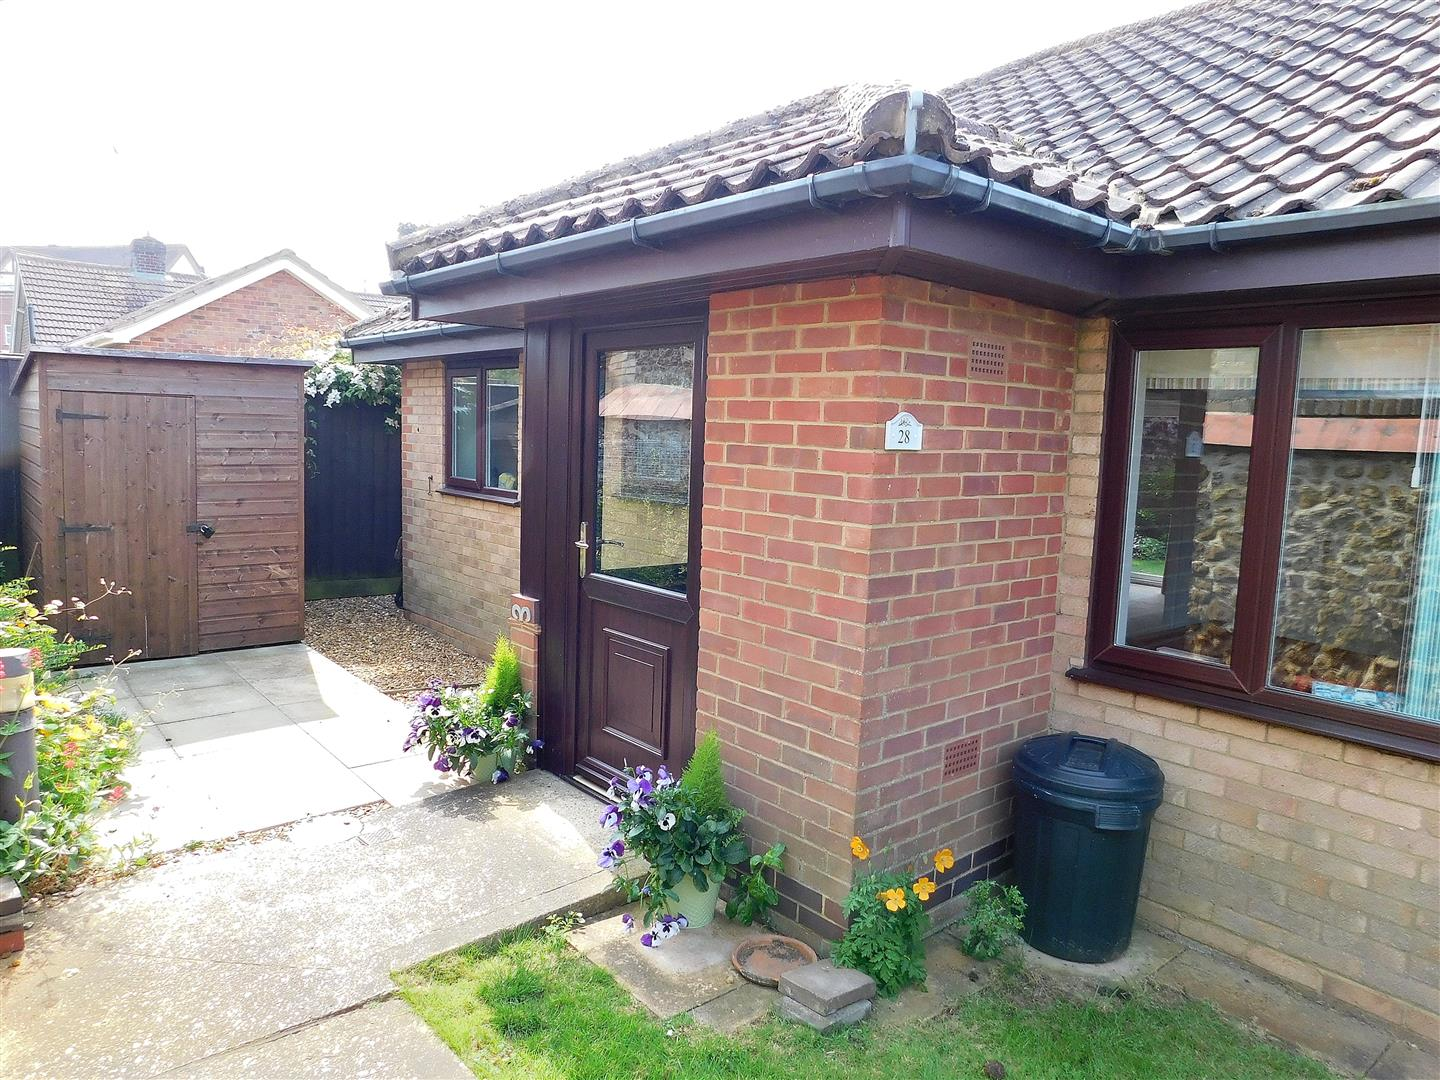 2 bed terraced bungalow for sale in Hunstanton, PE36 5HF, PE36